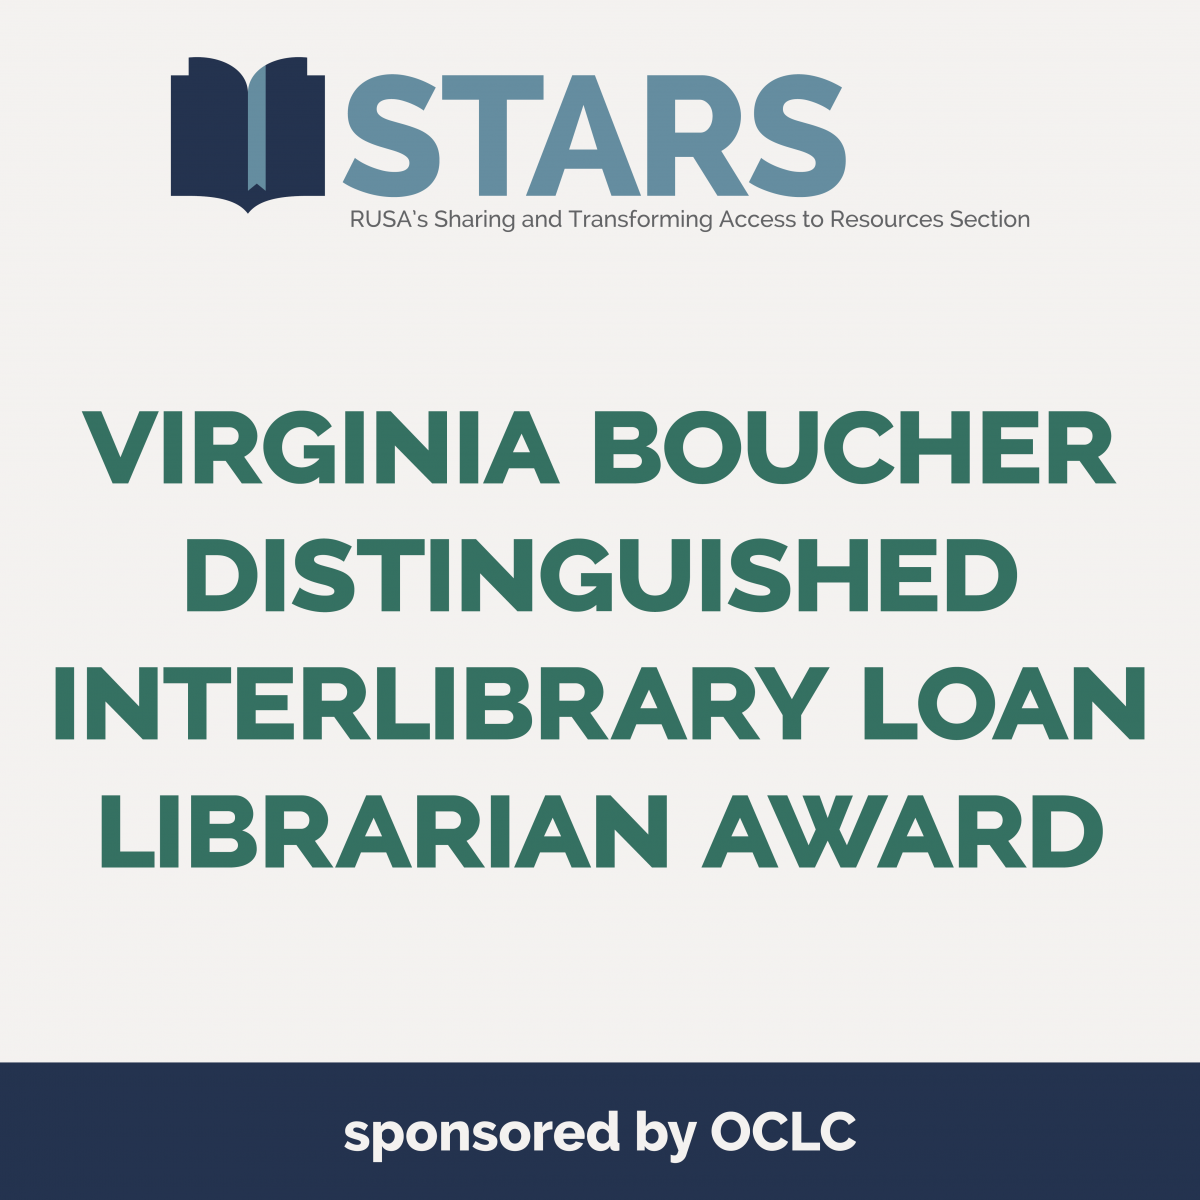 STARS Virginia Boucher Distinguished ILL Librarian Award